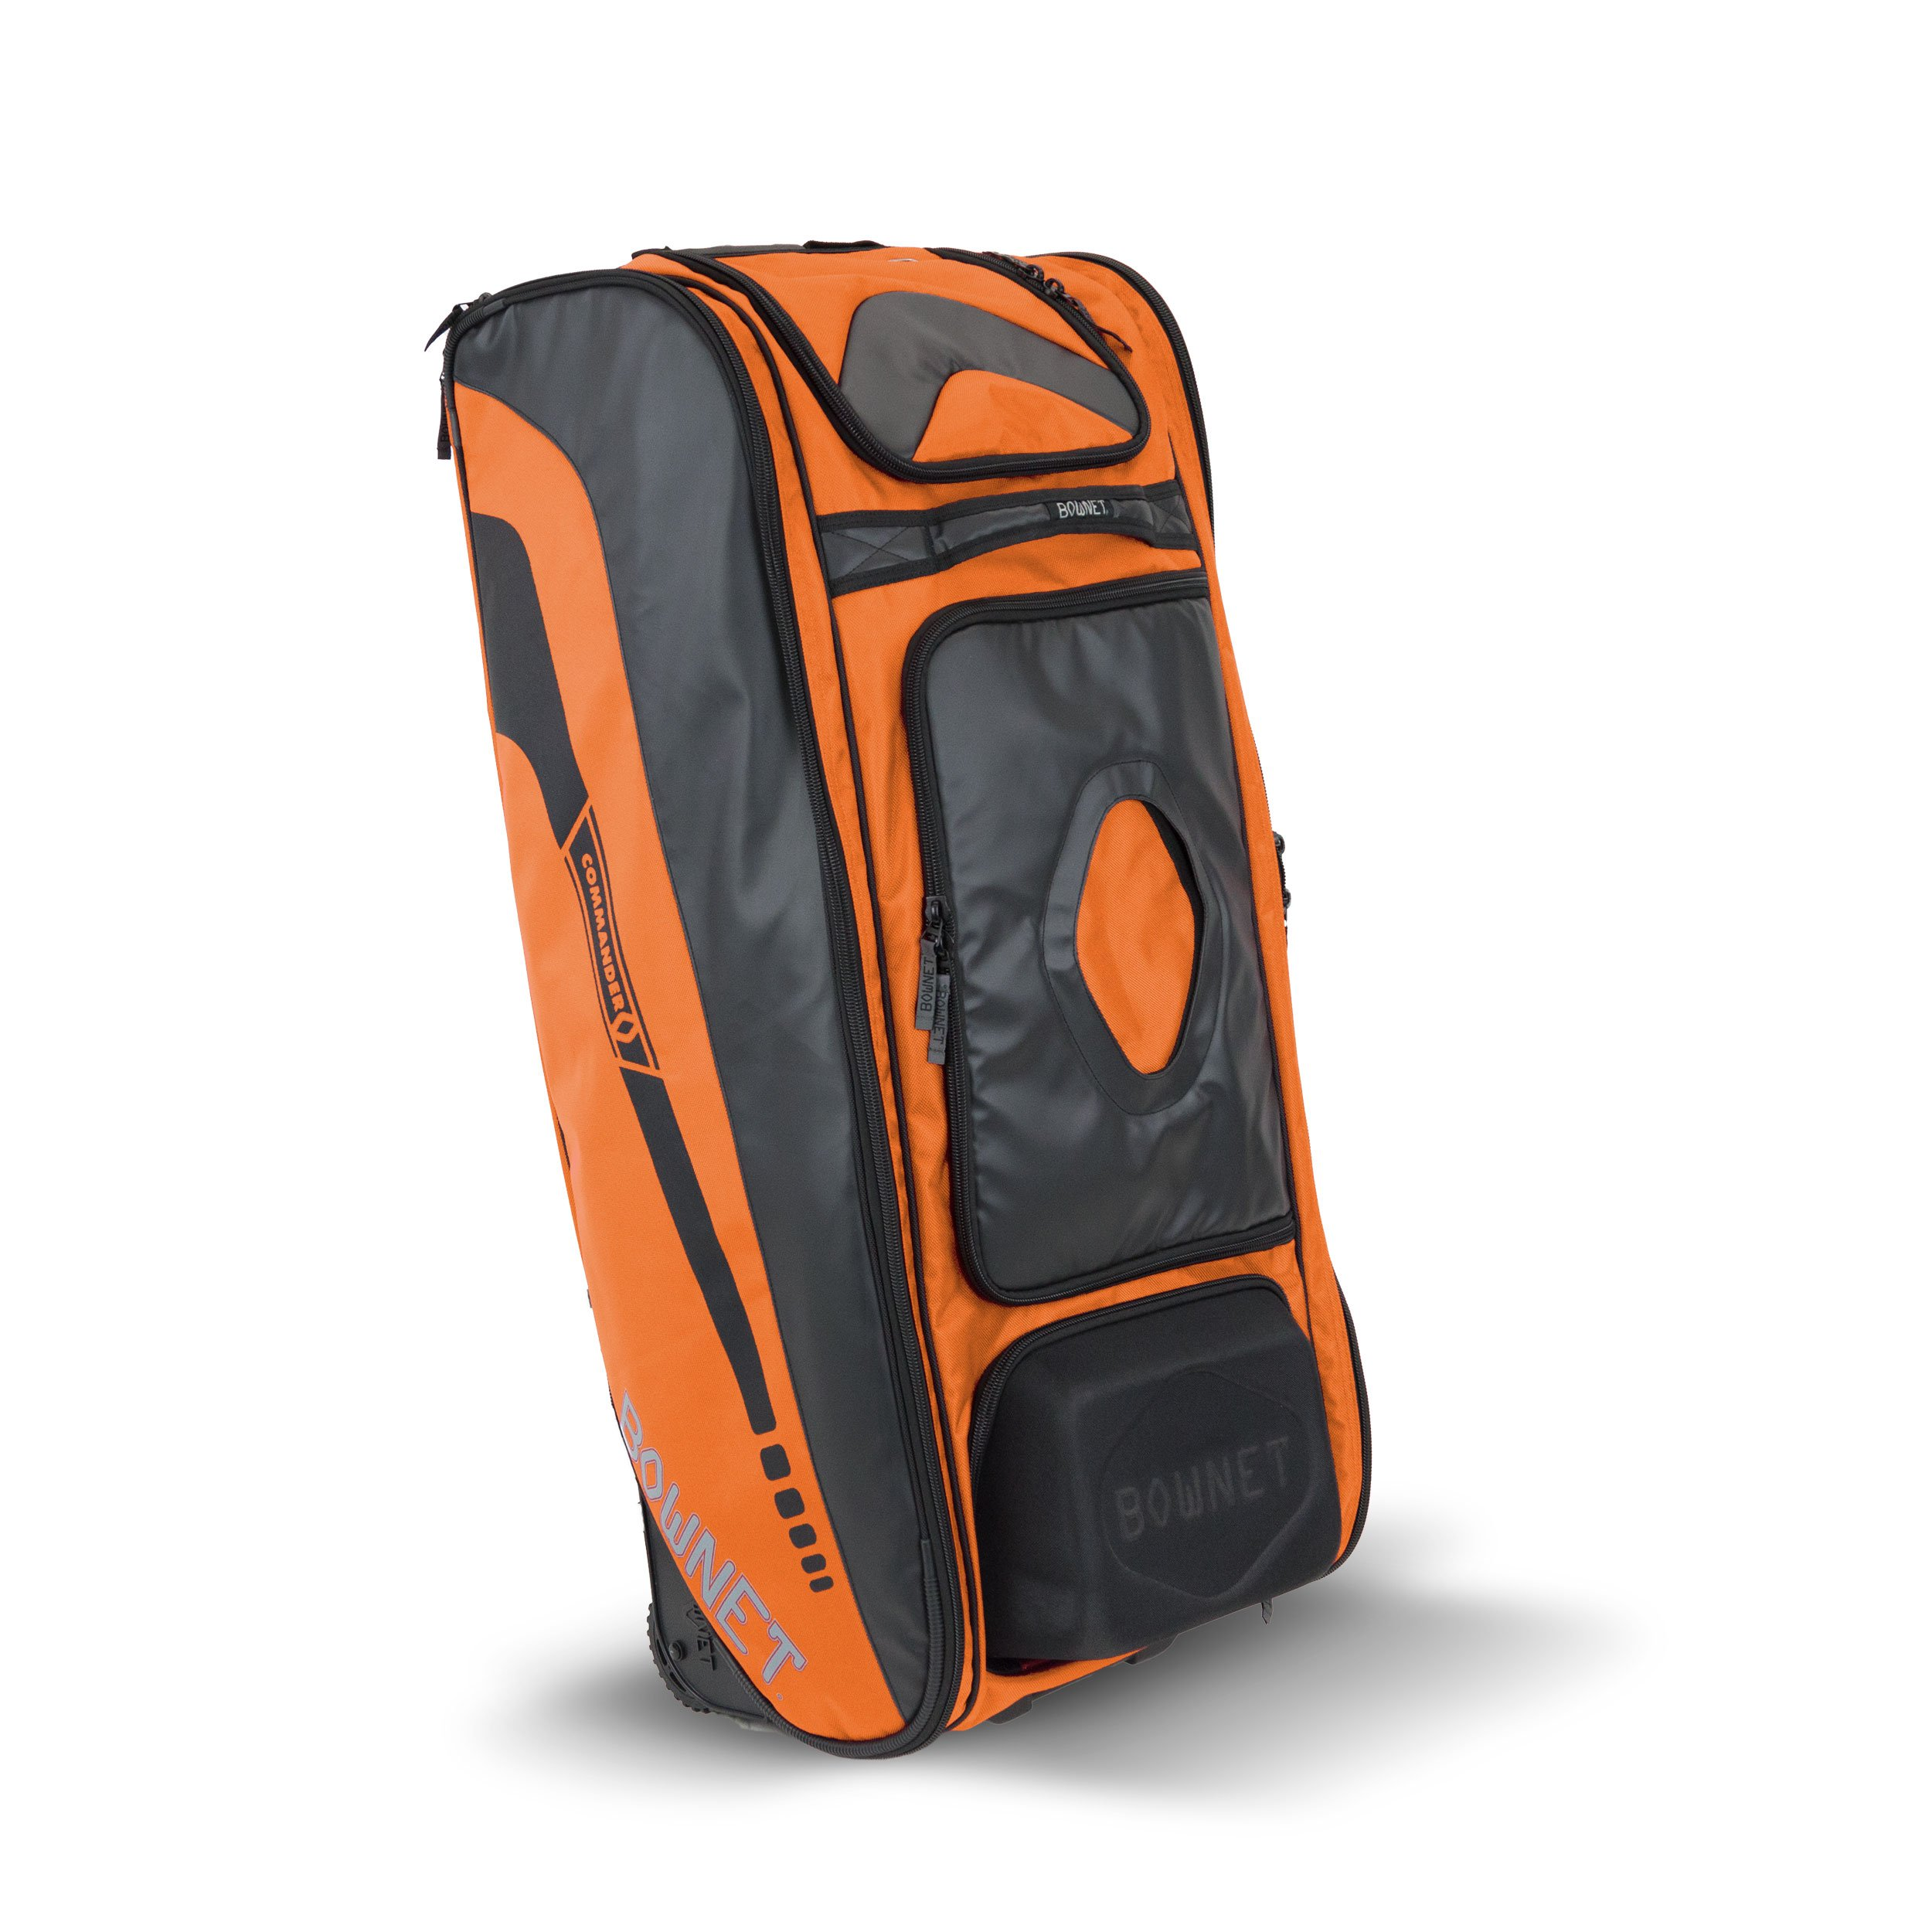 Details About Bownet The Commander Baseball Softball Rolling Catcher S Equipment Bag Orange